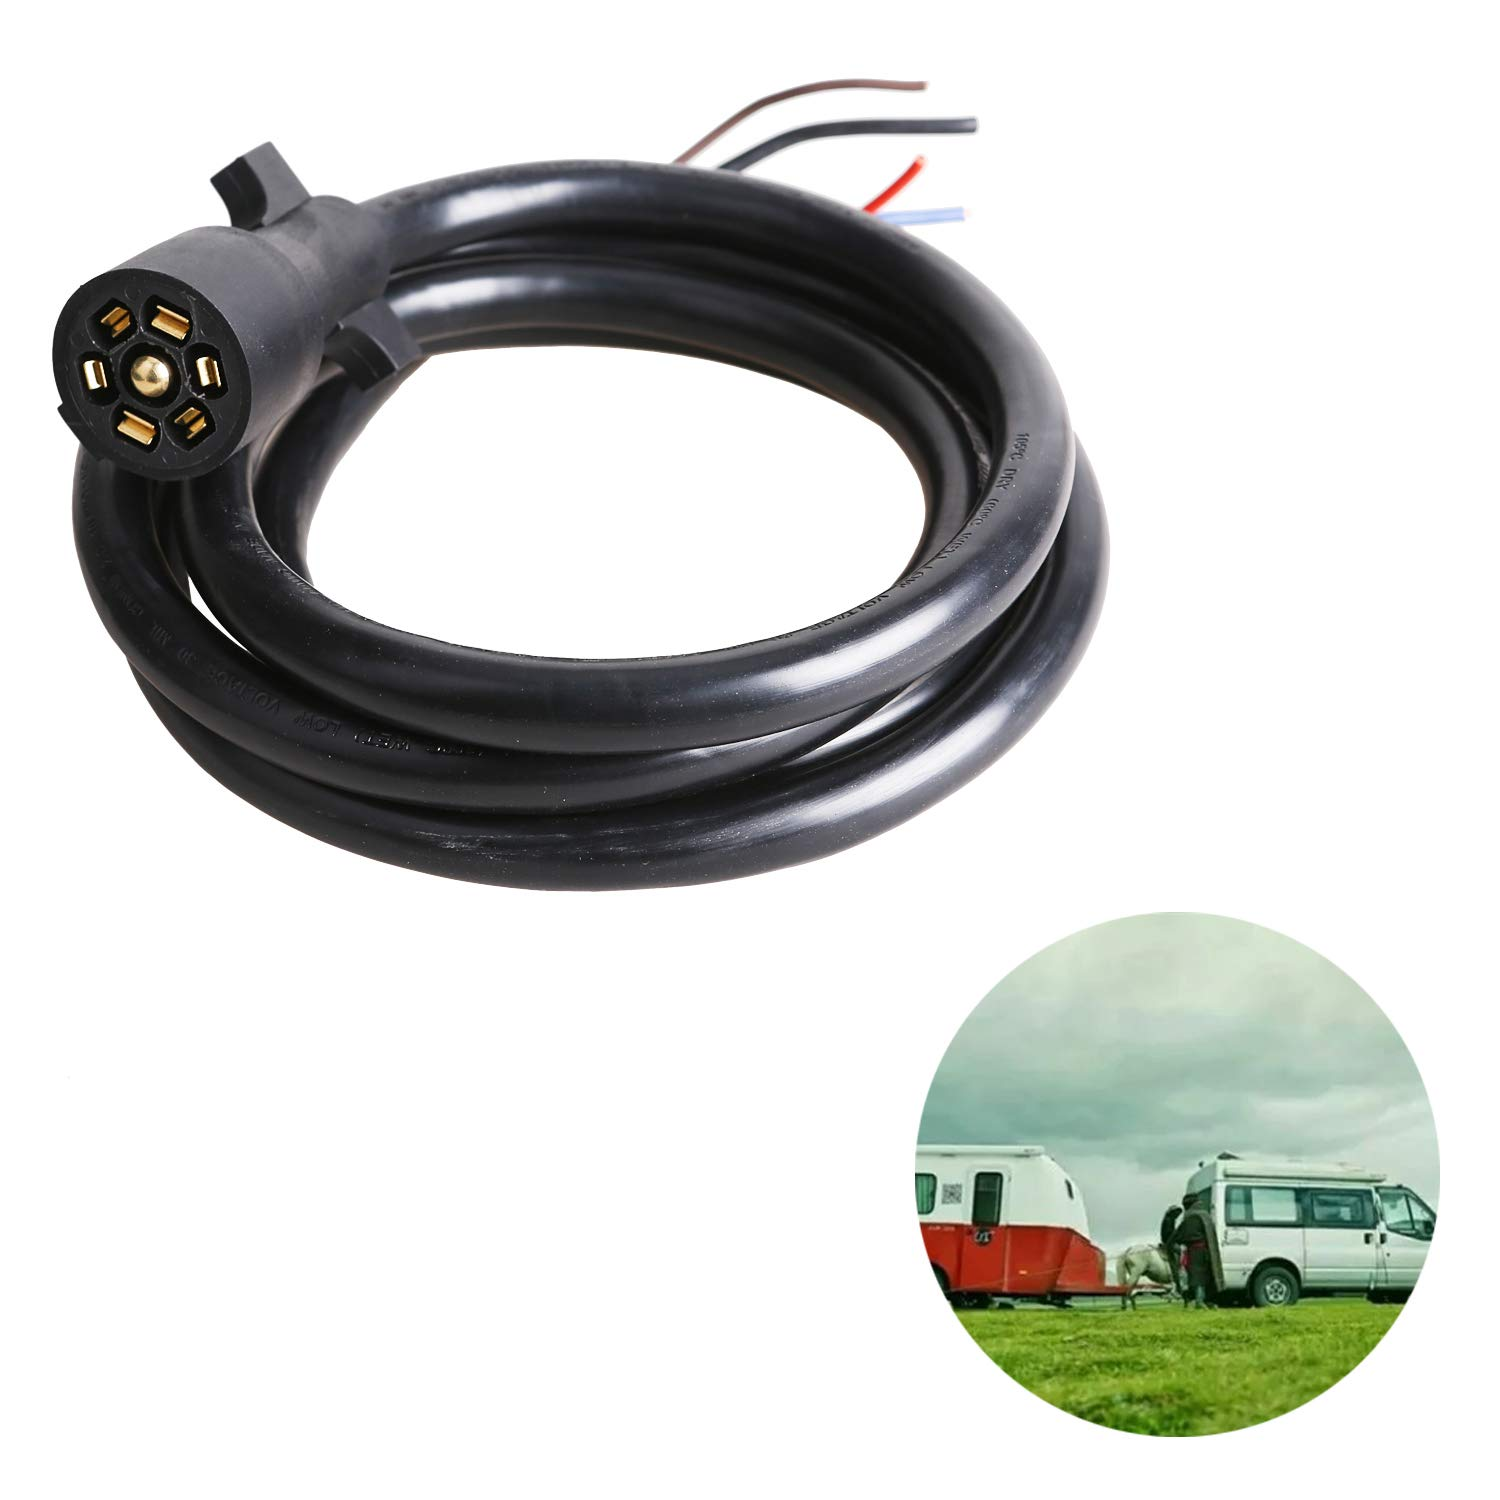 EPICORD Heavy Duty 7 Way Plug Inline Trailer Cord with Double Prongs Connector - 8 Feet, Weatherproof by EPICORD (Image #6)